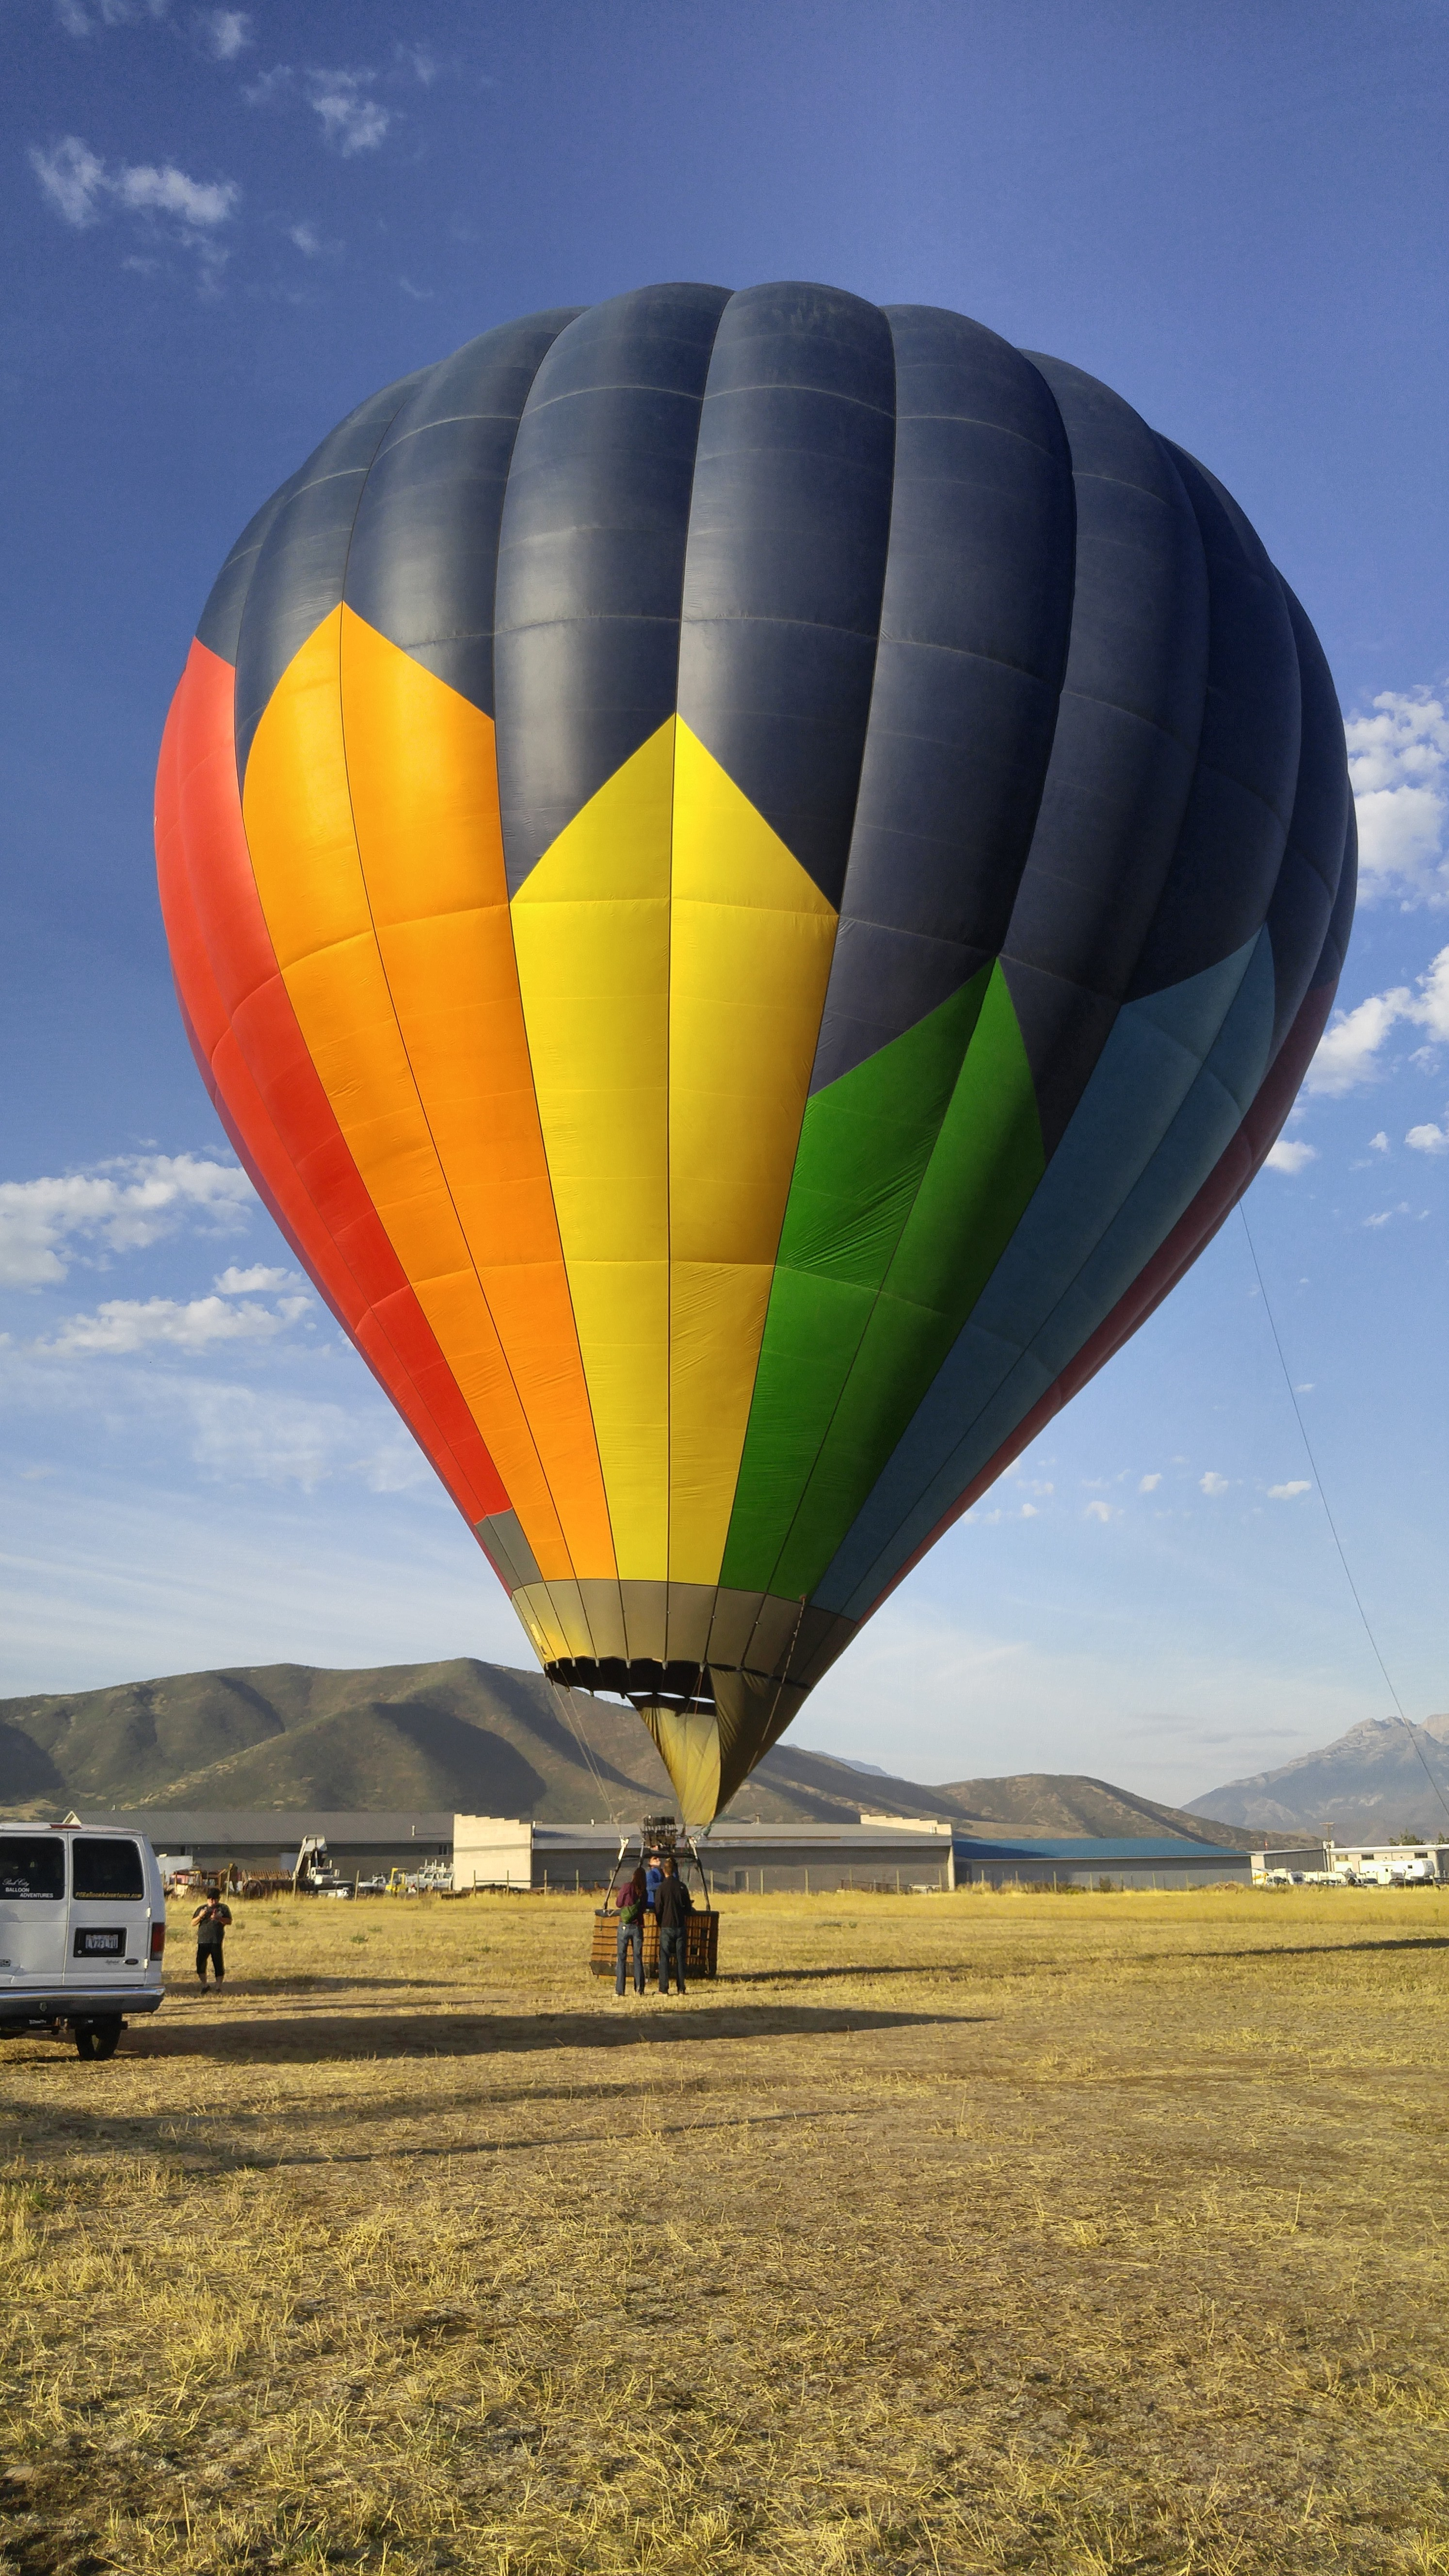 Incredible day in a Hot Air Balloon Park City, Utah